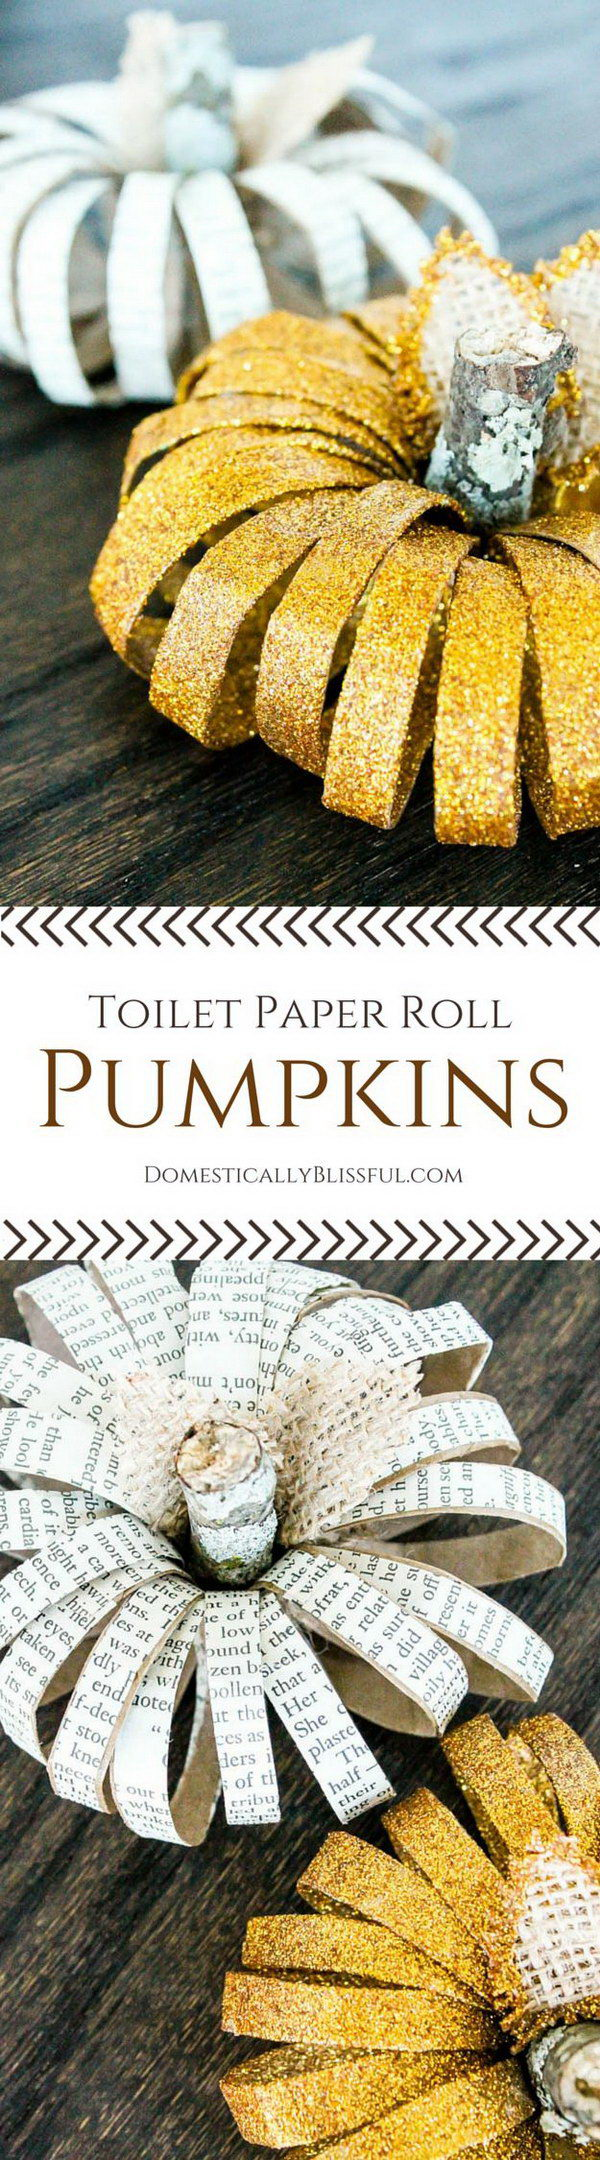 DIY Toilet Paper Roll Pumpkins.